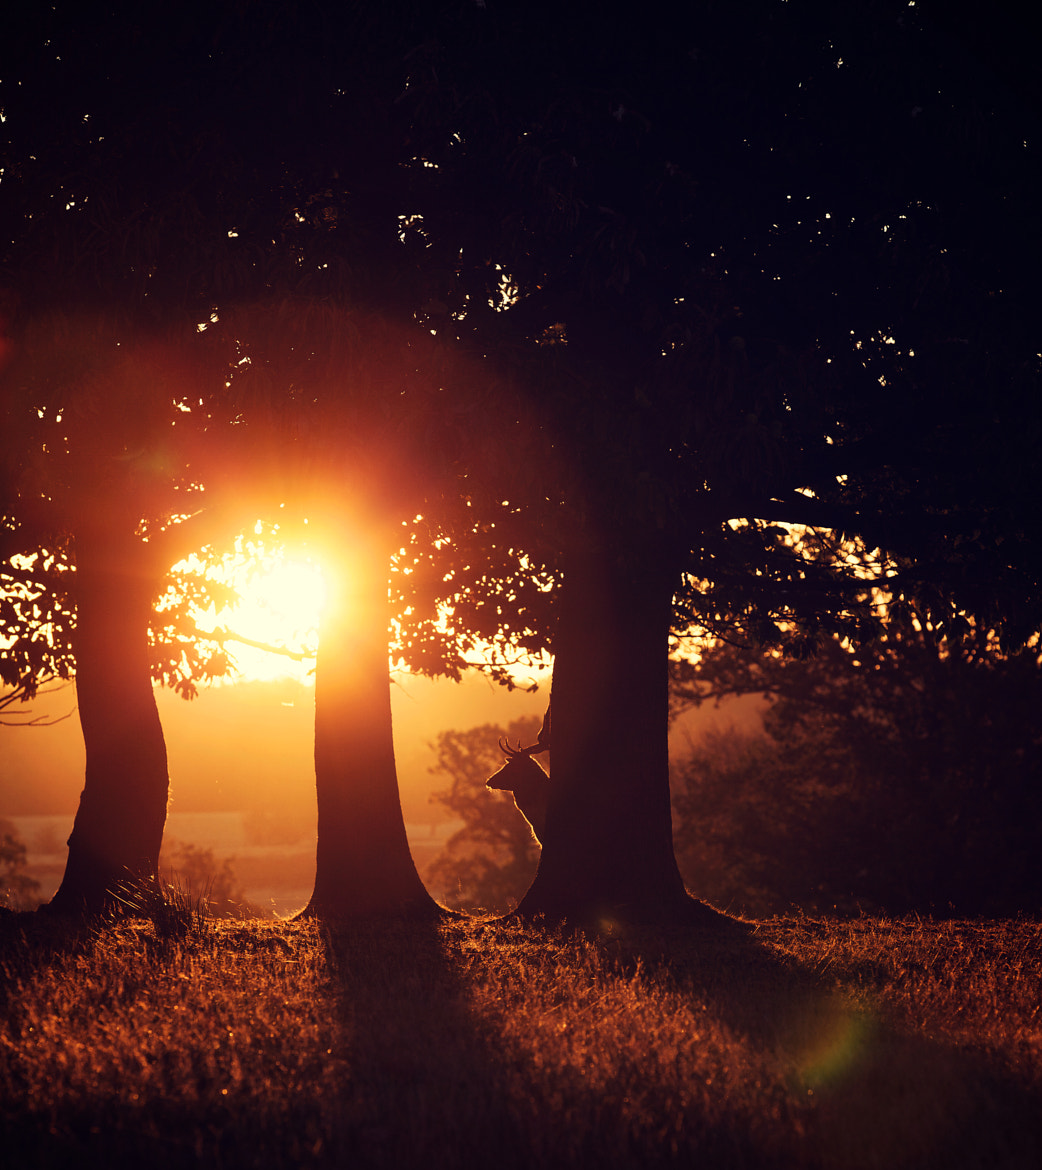 Photograph flare by Mark Bridger on 500px